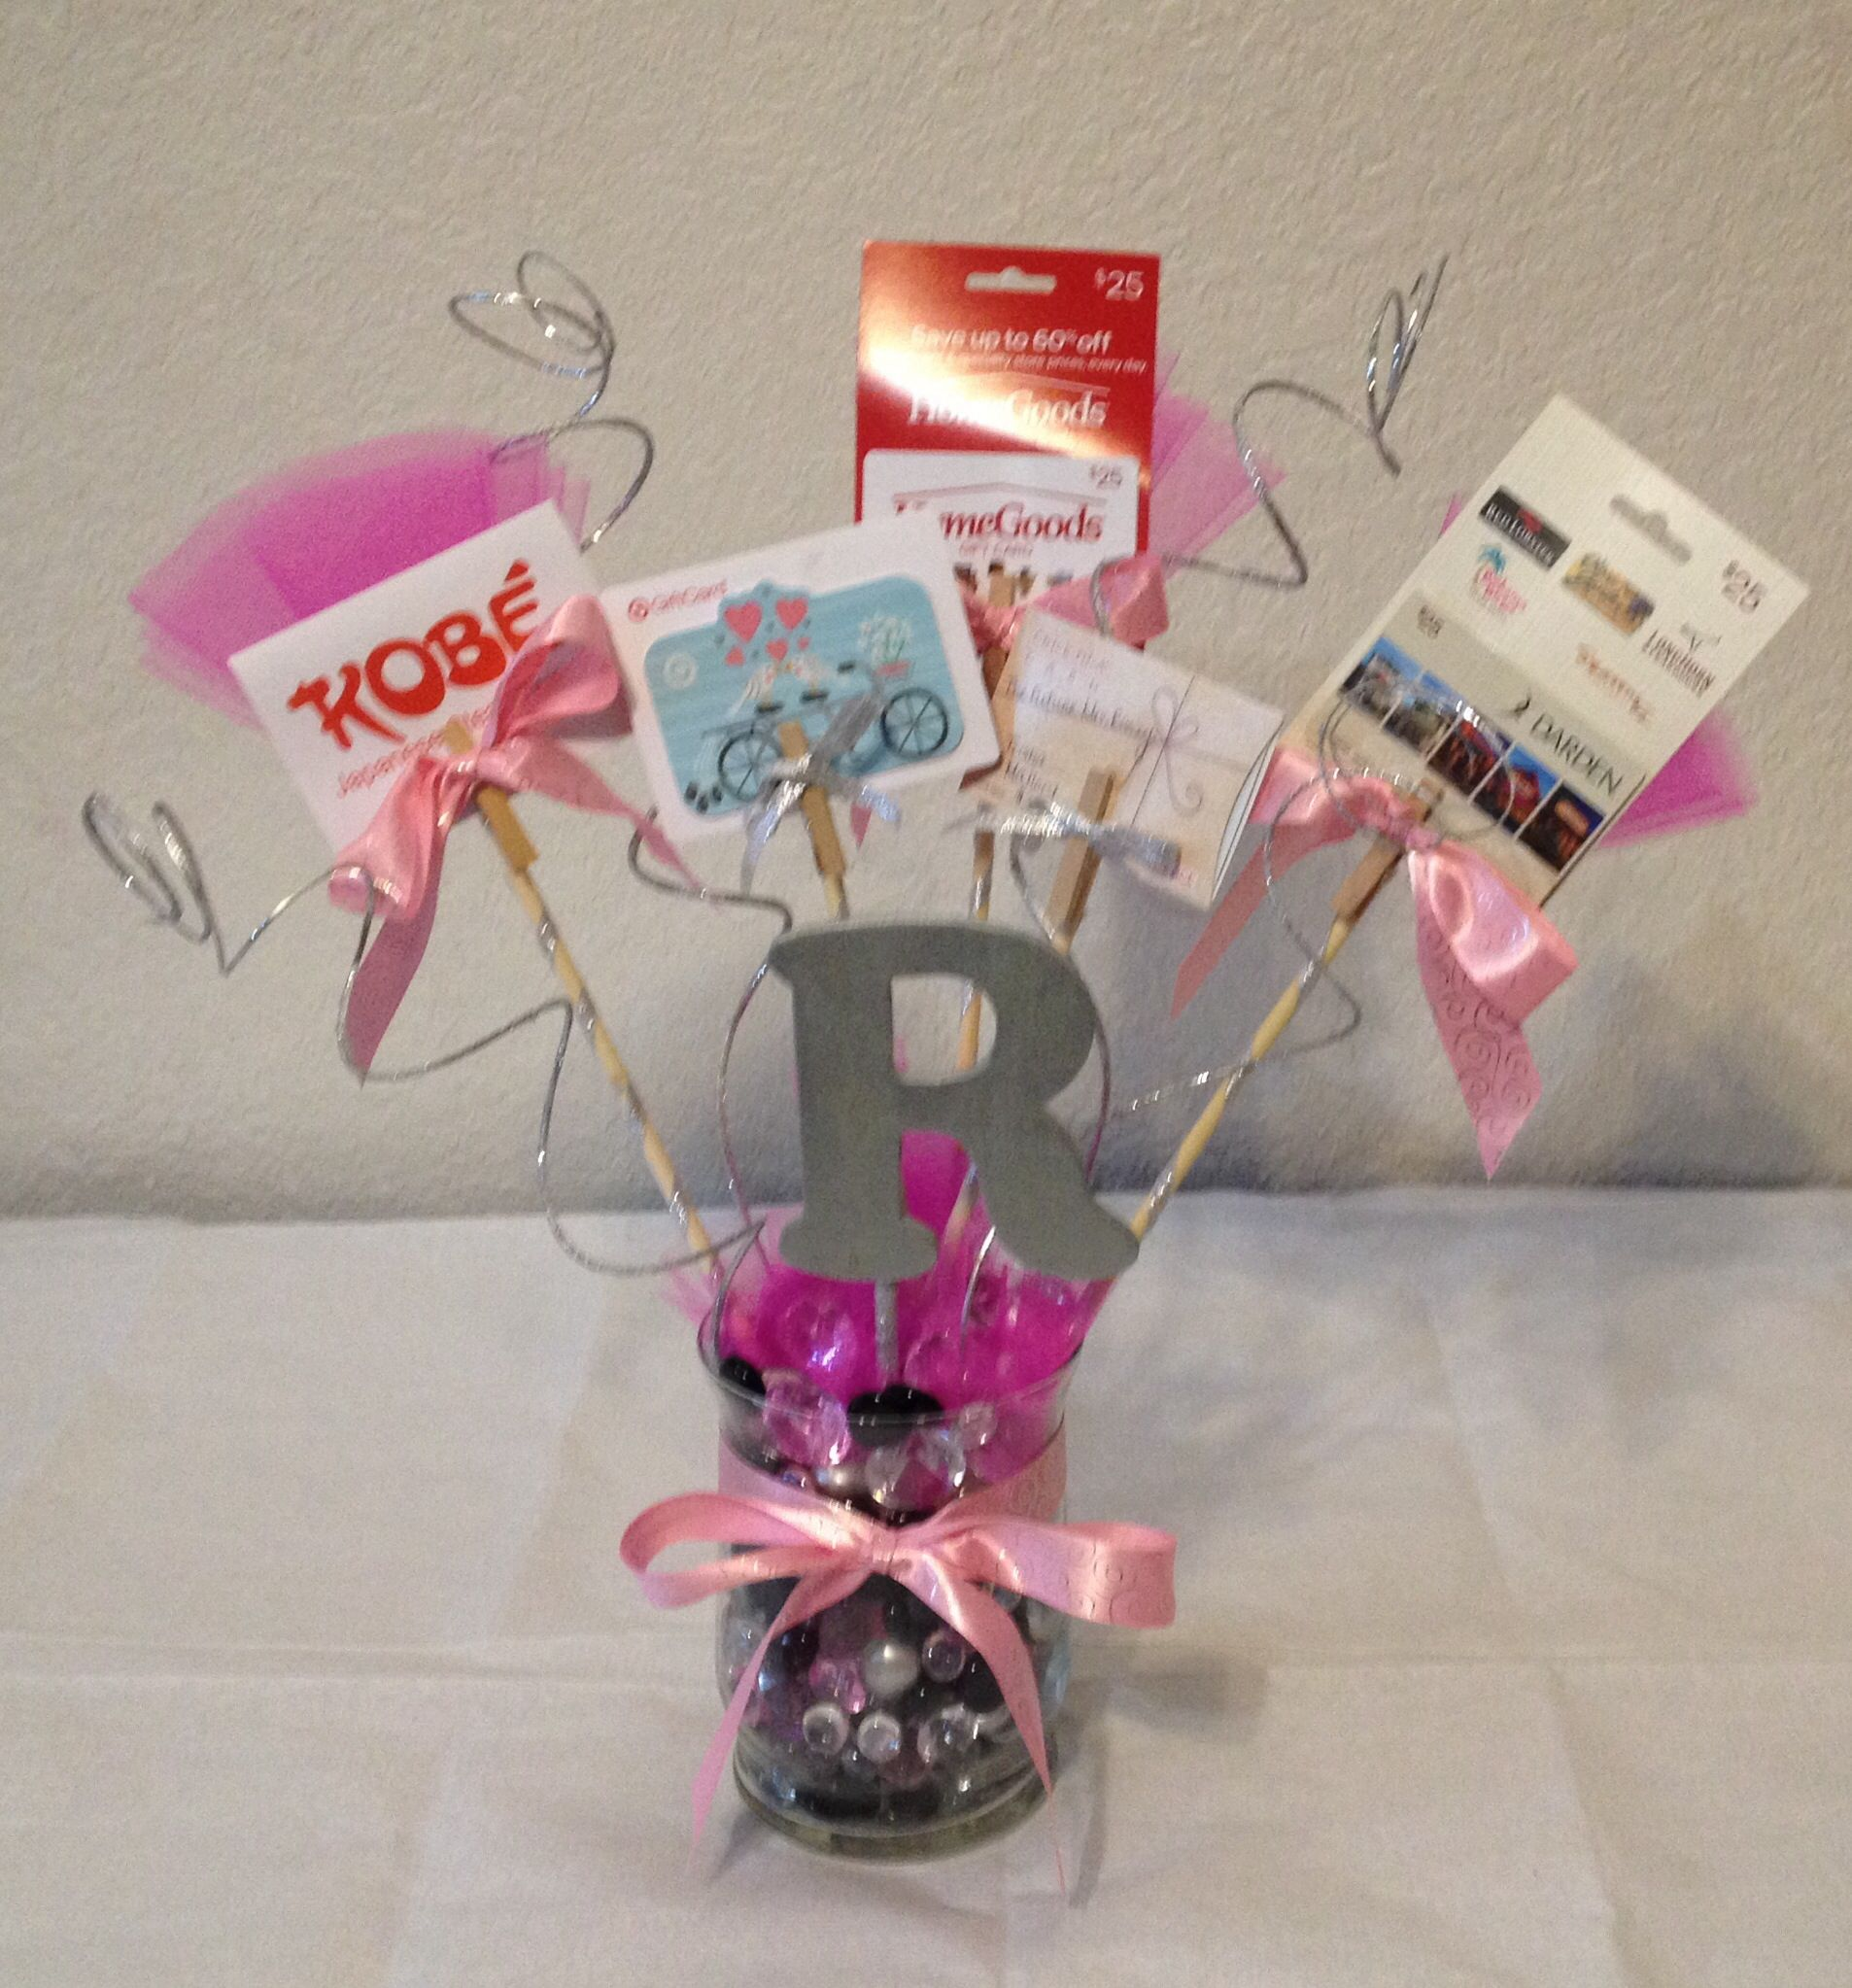 Gift Card For Wedding: Bridal Shower Gift Card Bouquet DIY Materials Used: Glass